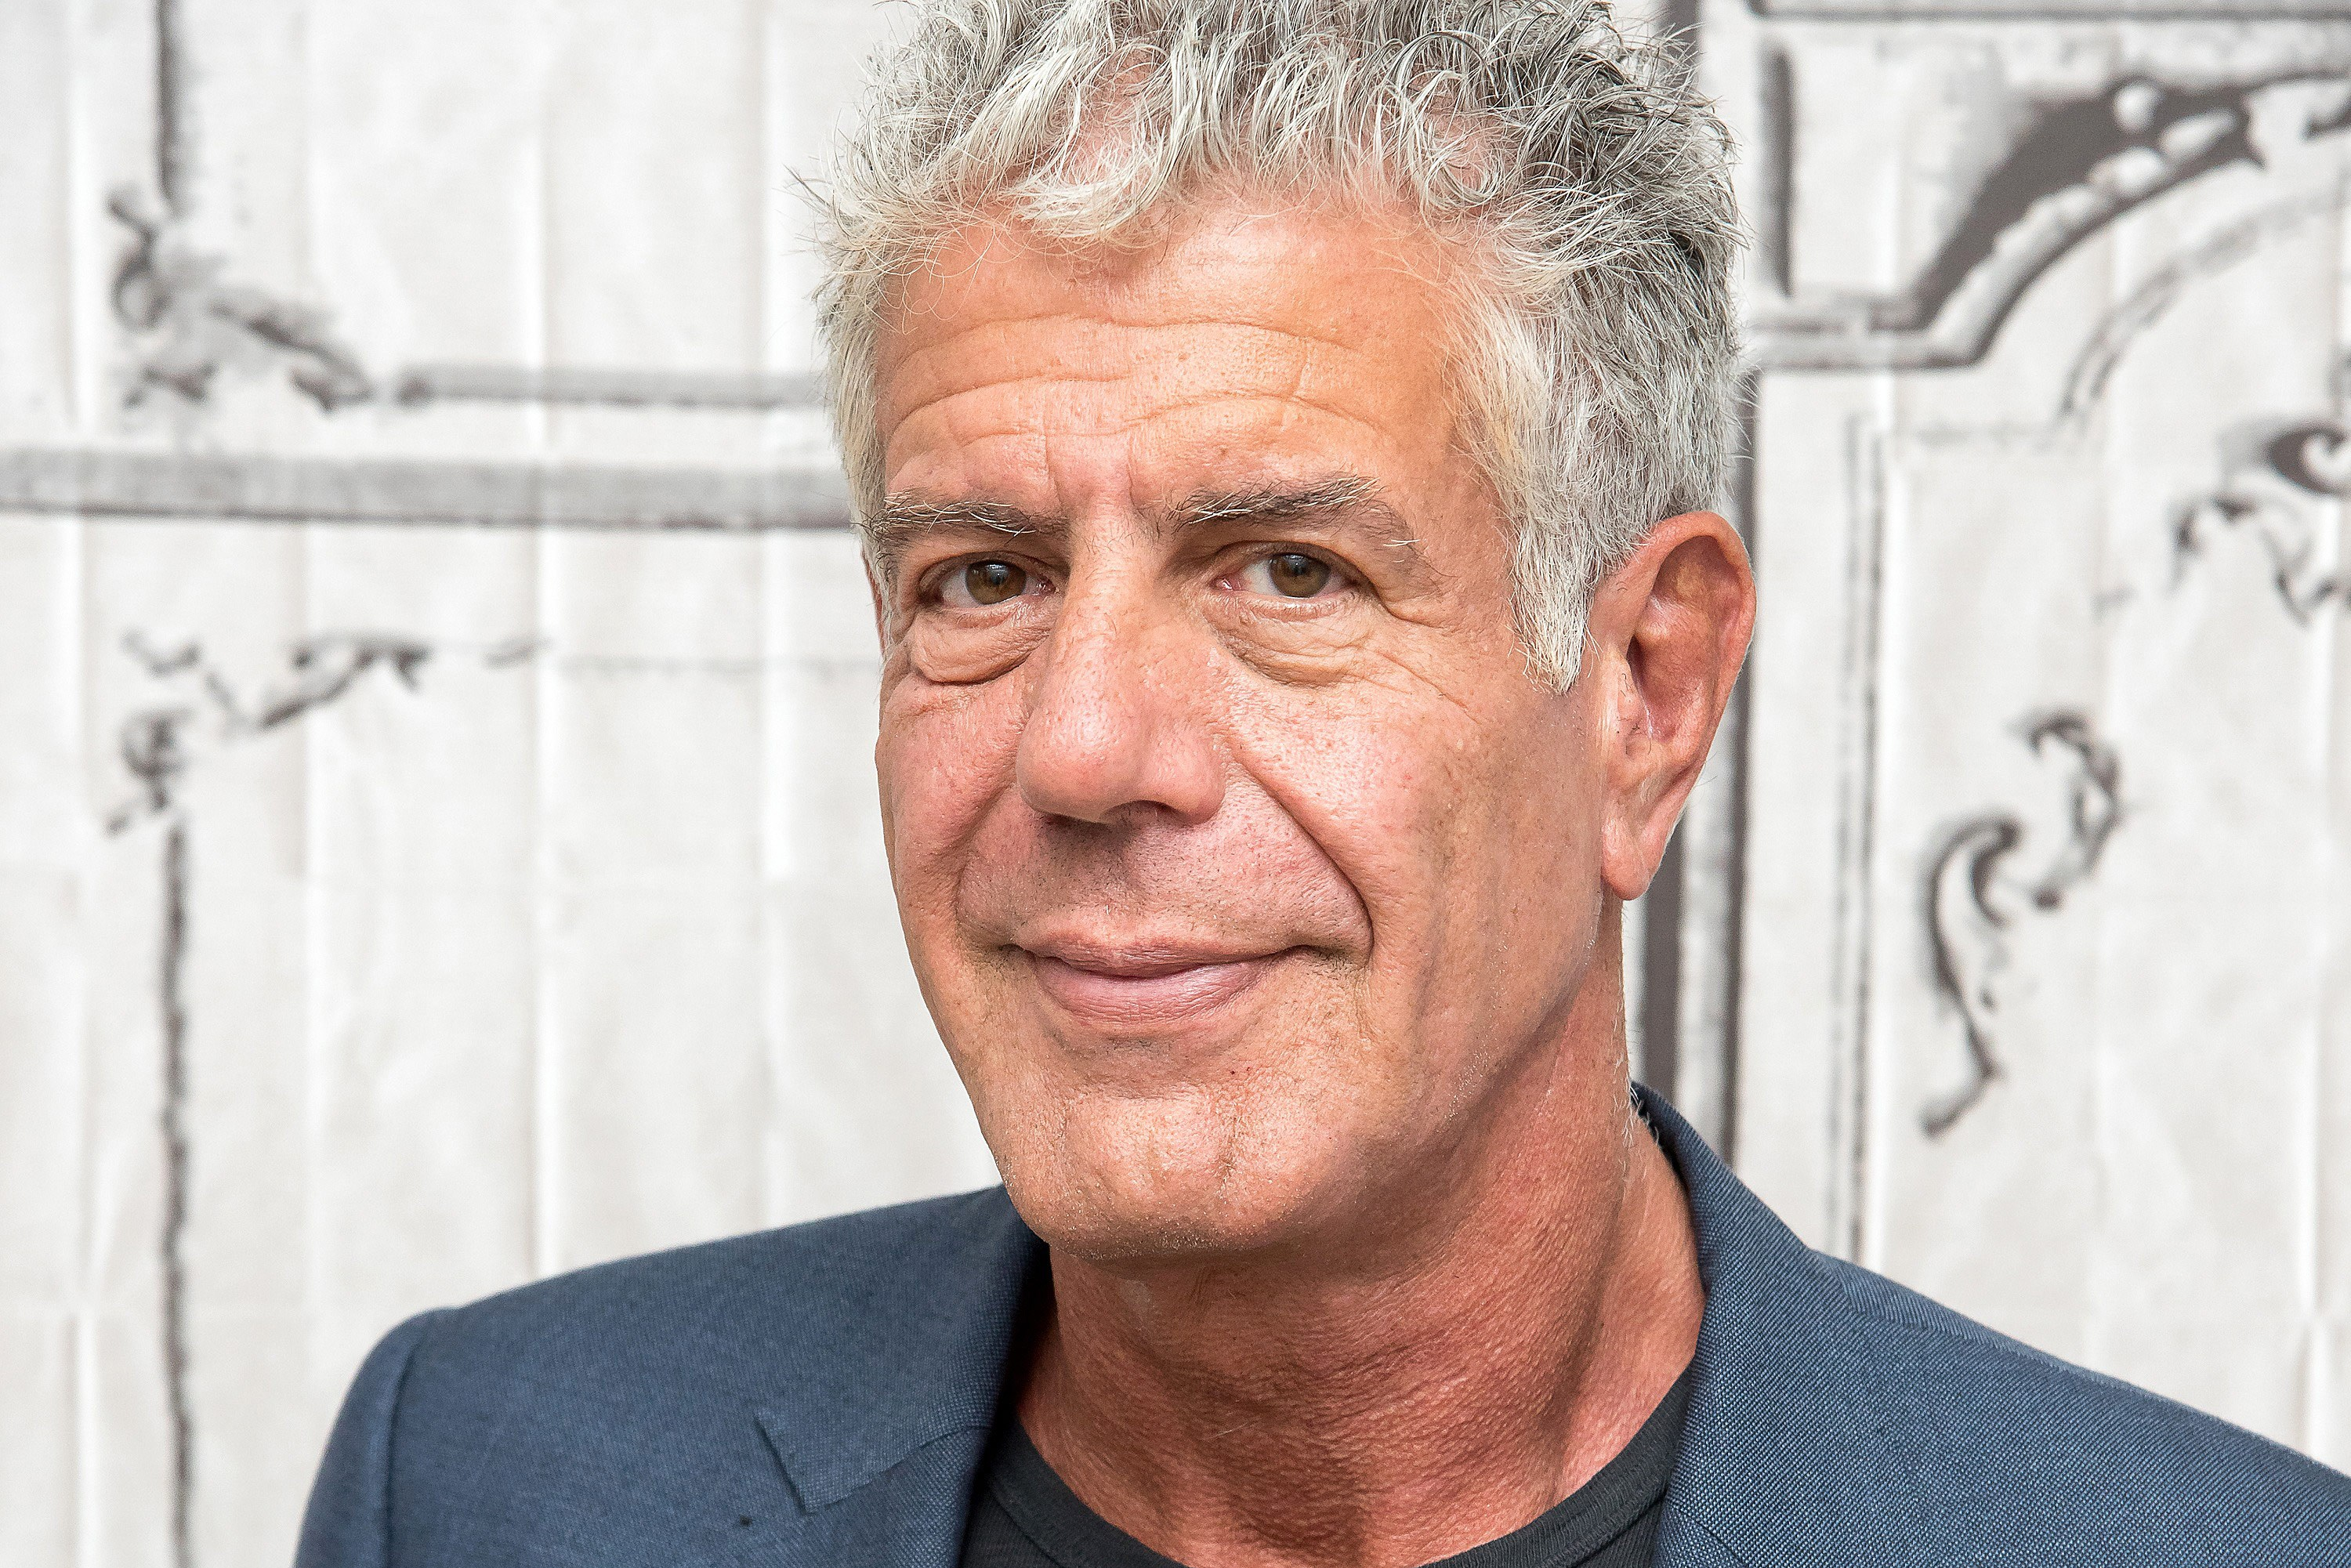 Anthony Bourdain Ethnicity, Race, Career and Nationality